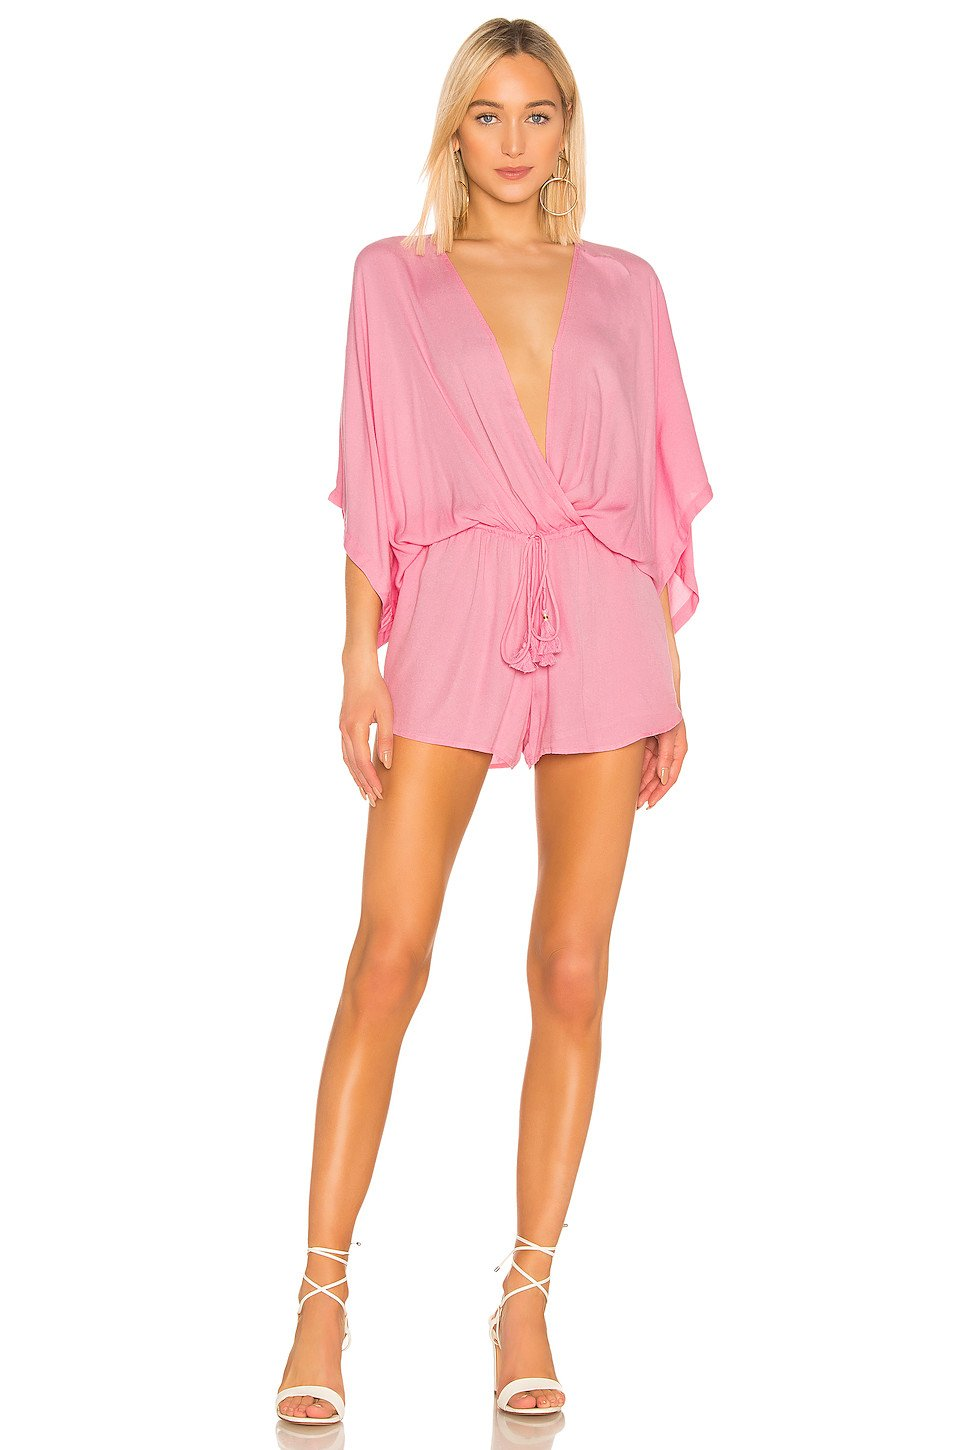 Ashley Romper in Hot Pink